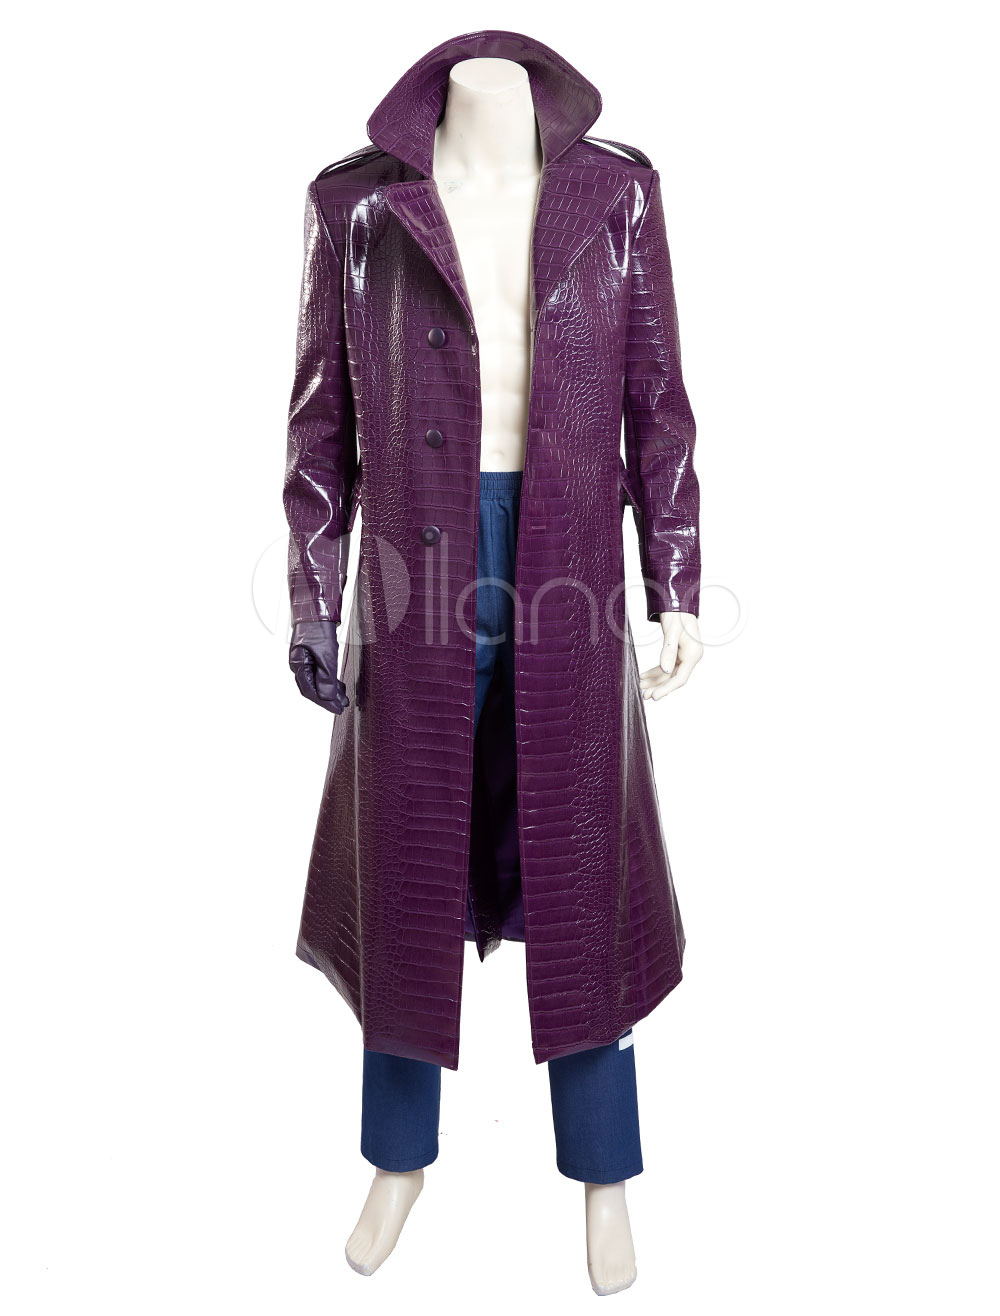 Buy Batman Suicide Squad Joker Halloween Cosplay Costume Pu Overcoat With Pants Halloween for $143.09 in Milanoo store